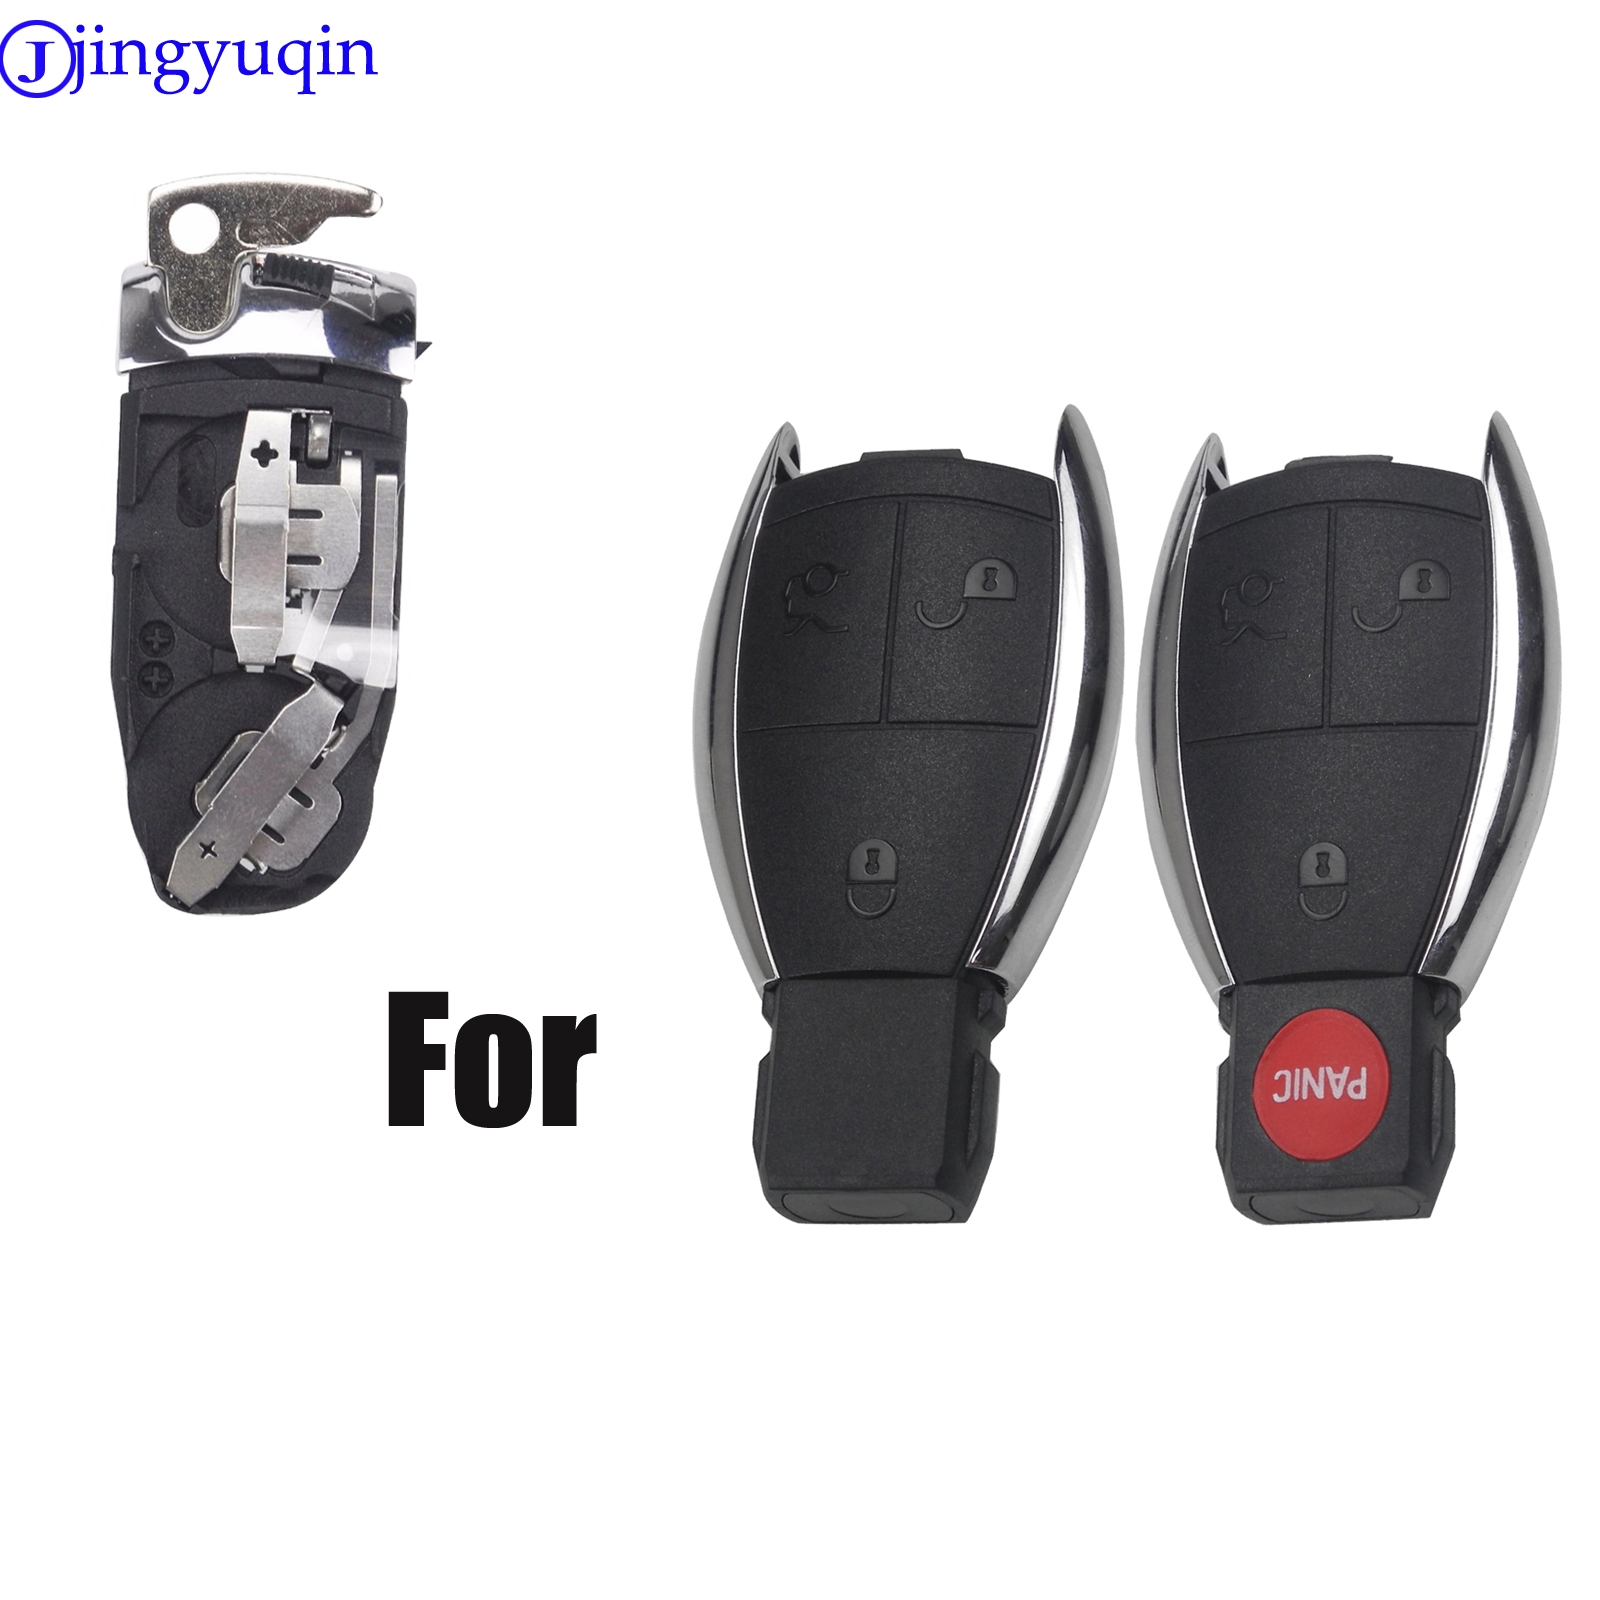 Jingyuqin Battery Holder With Small Key Shell Fob For Mercedes For Benz A B C E S CL CLS CLA CLK W203 W204 W205 W210 W211 W212